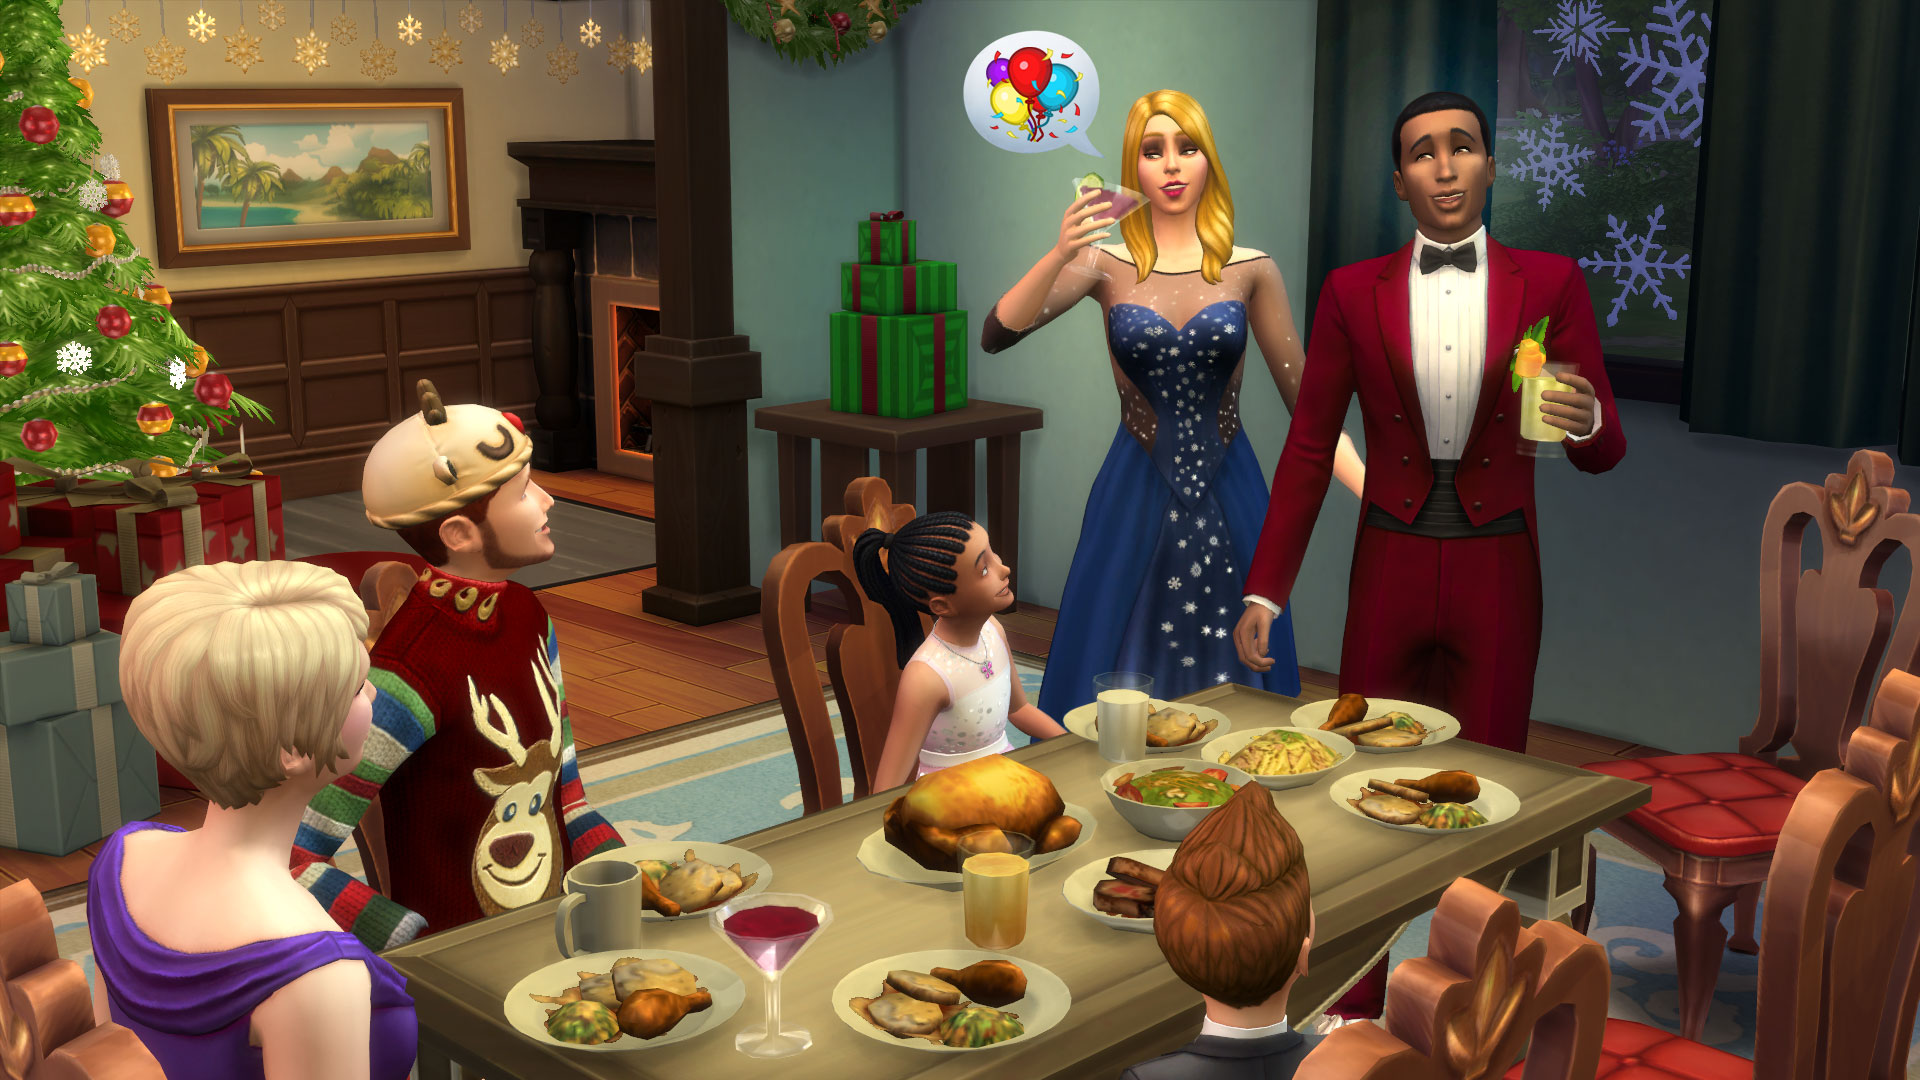 TS4_638_HOLIDAY_PACK_02_002a.jpg